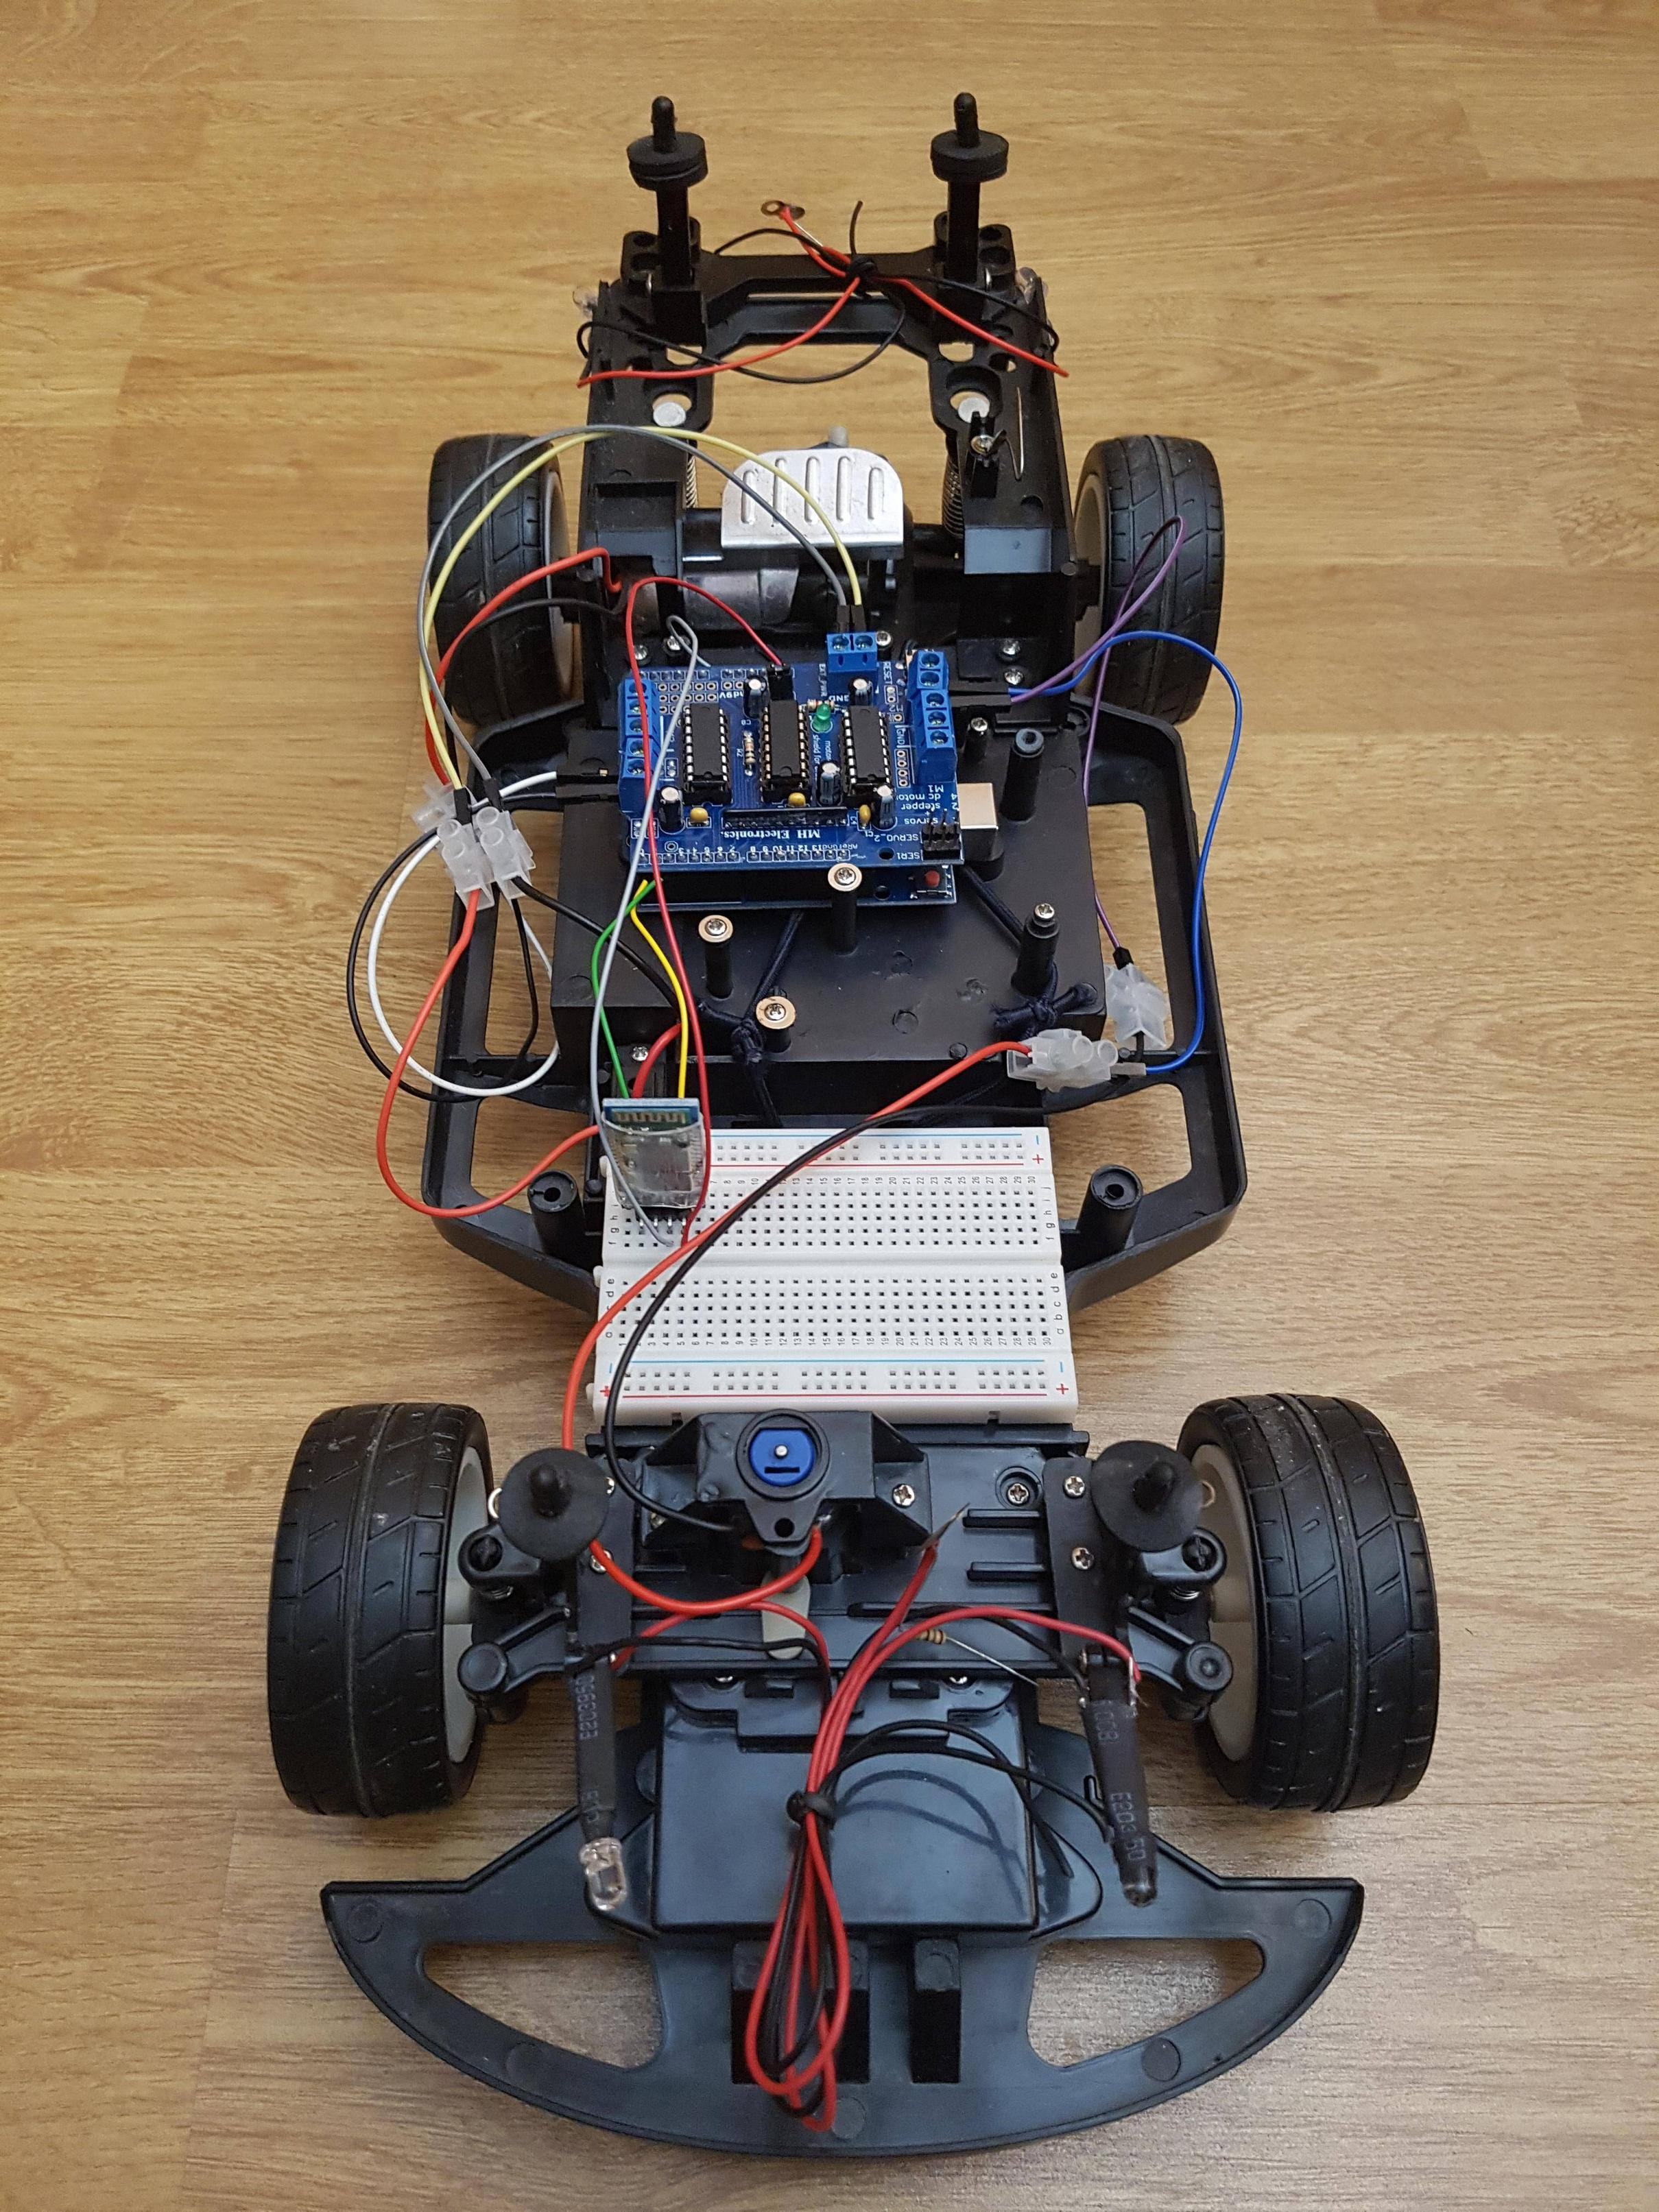 GitHub - danielgospodinow/Dancho-s-RC-Car: [C/Java] Arduino-based RC Car